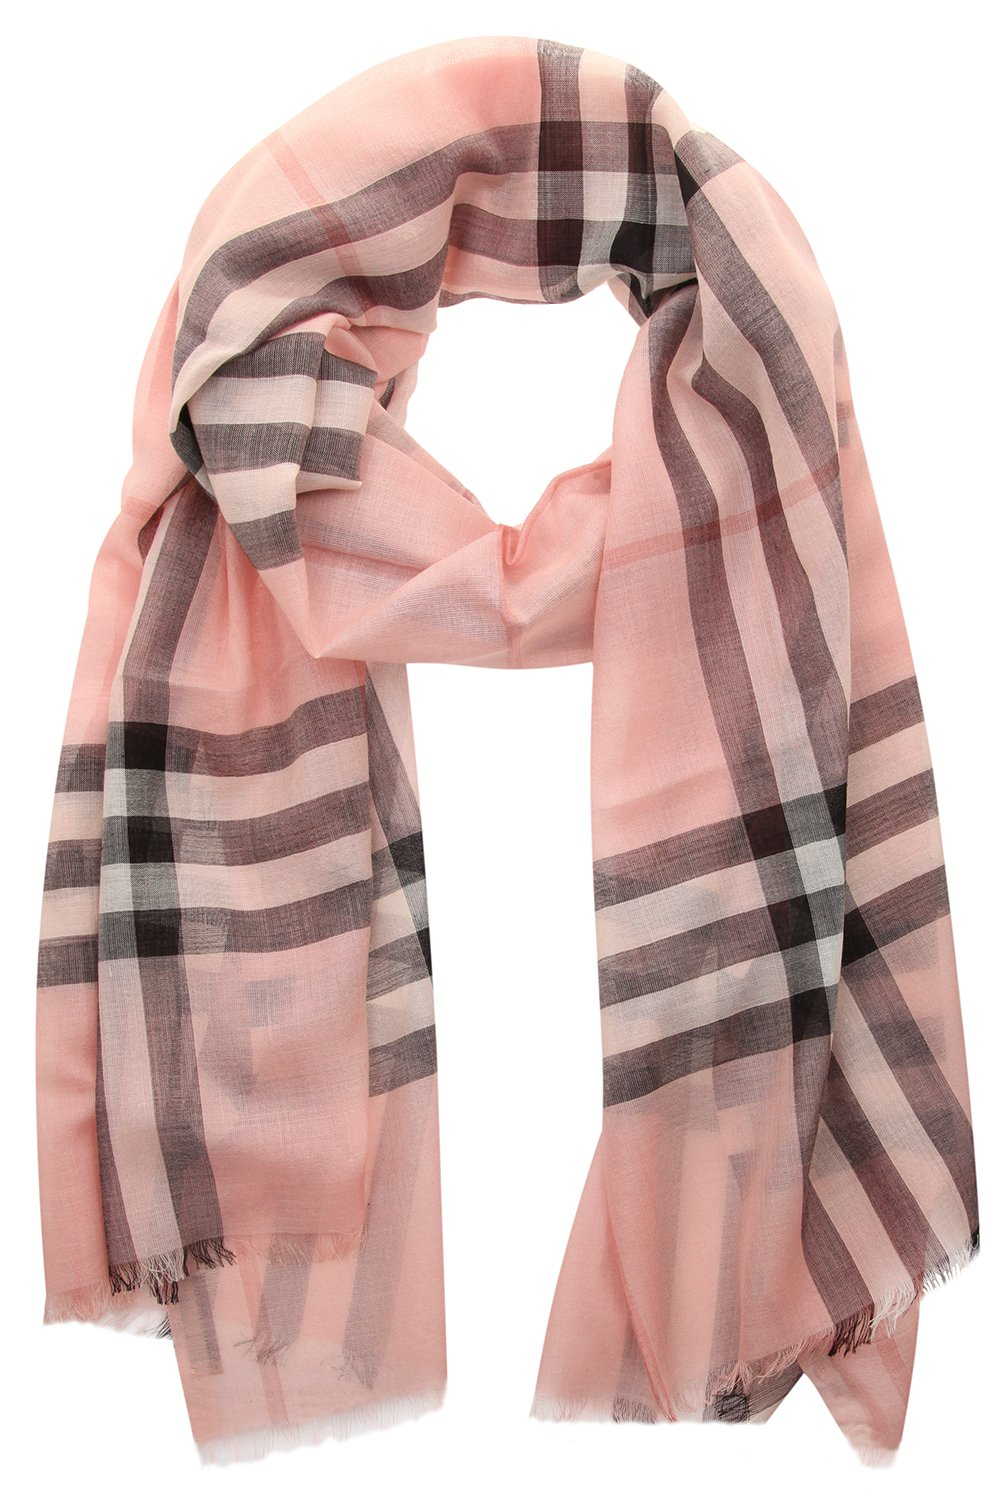 Burberry Lightweight Check Wool and Silk Scarf - Ash Rose by BURBERRY